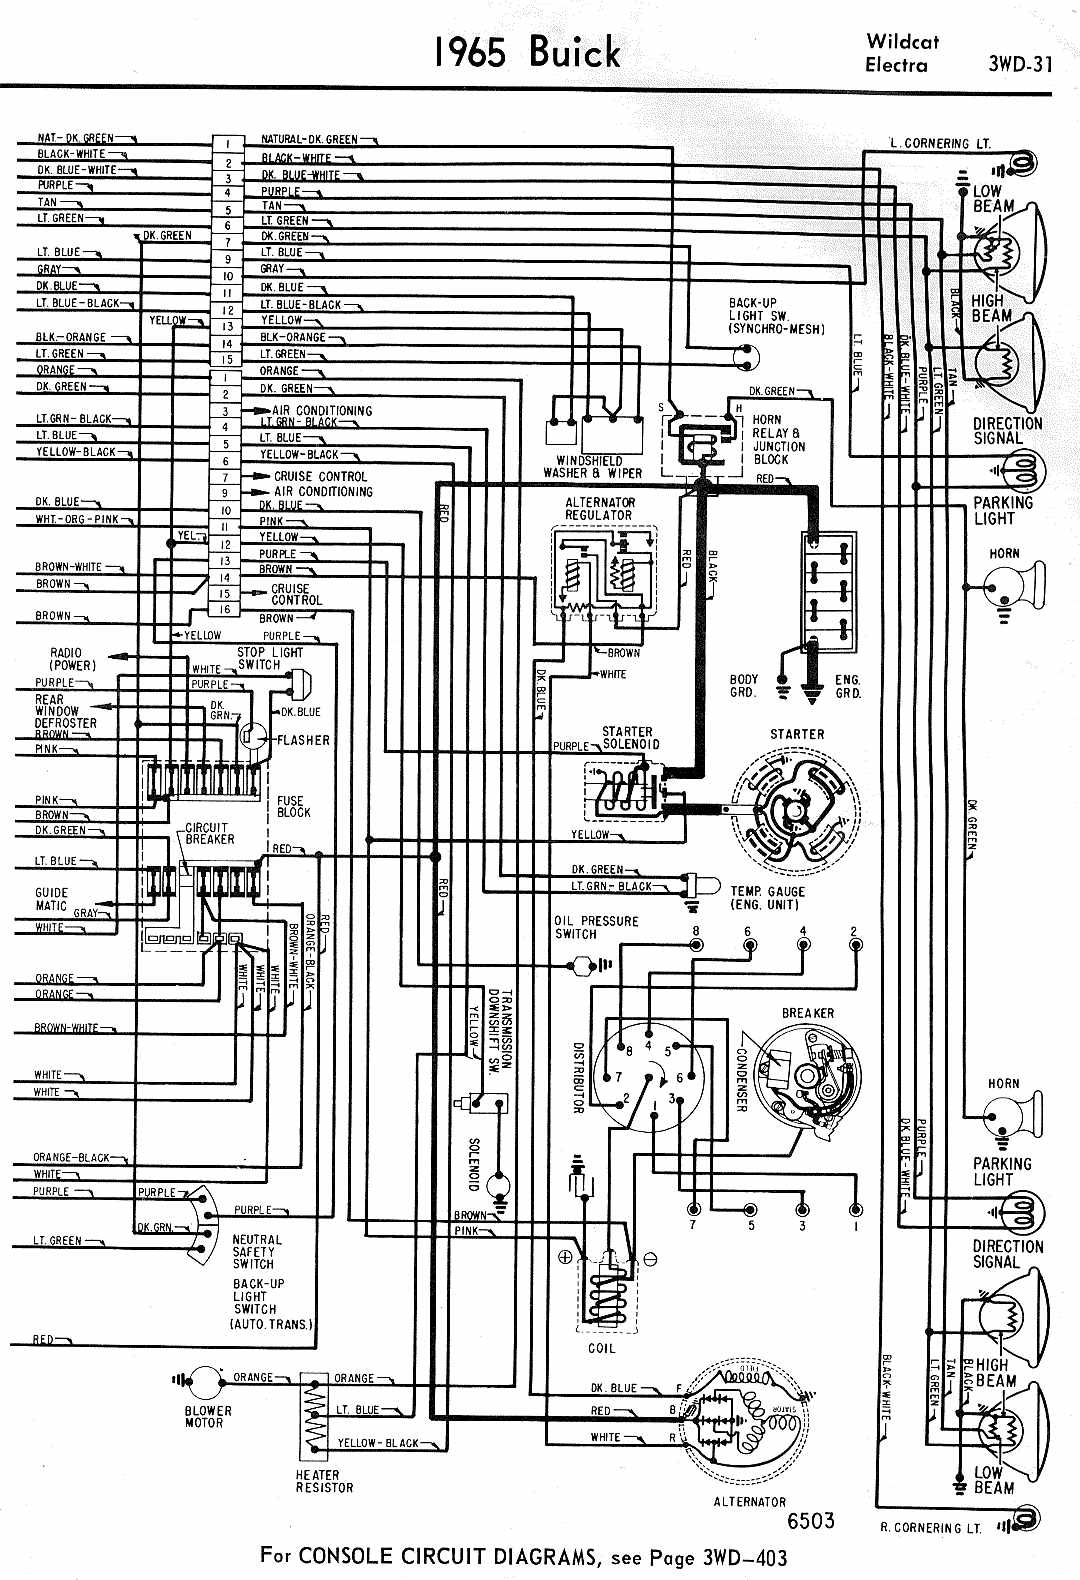 Buick car manuals wiring diagrams pdf fault codes download fandeluxe Image collections